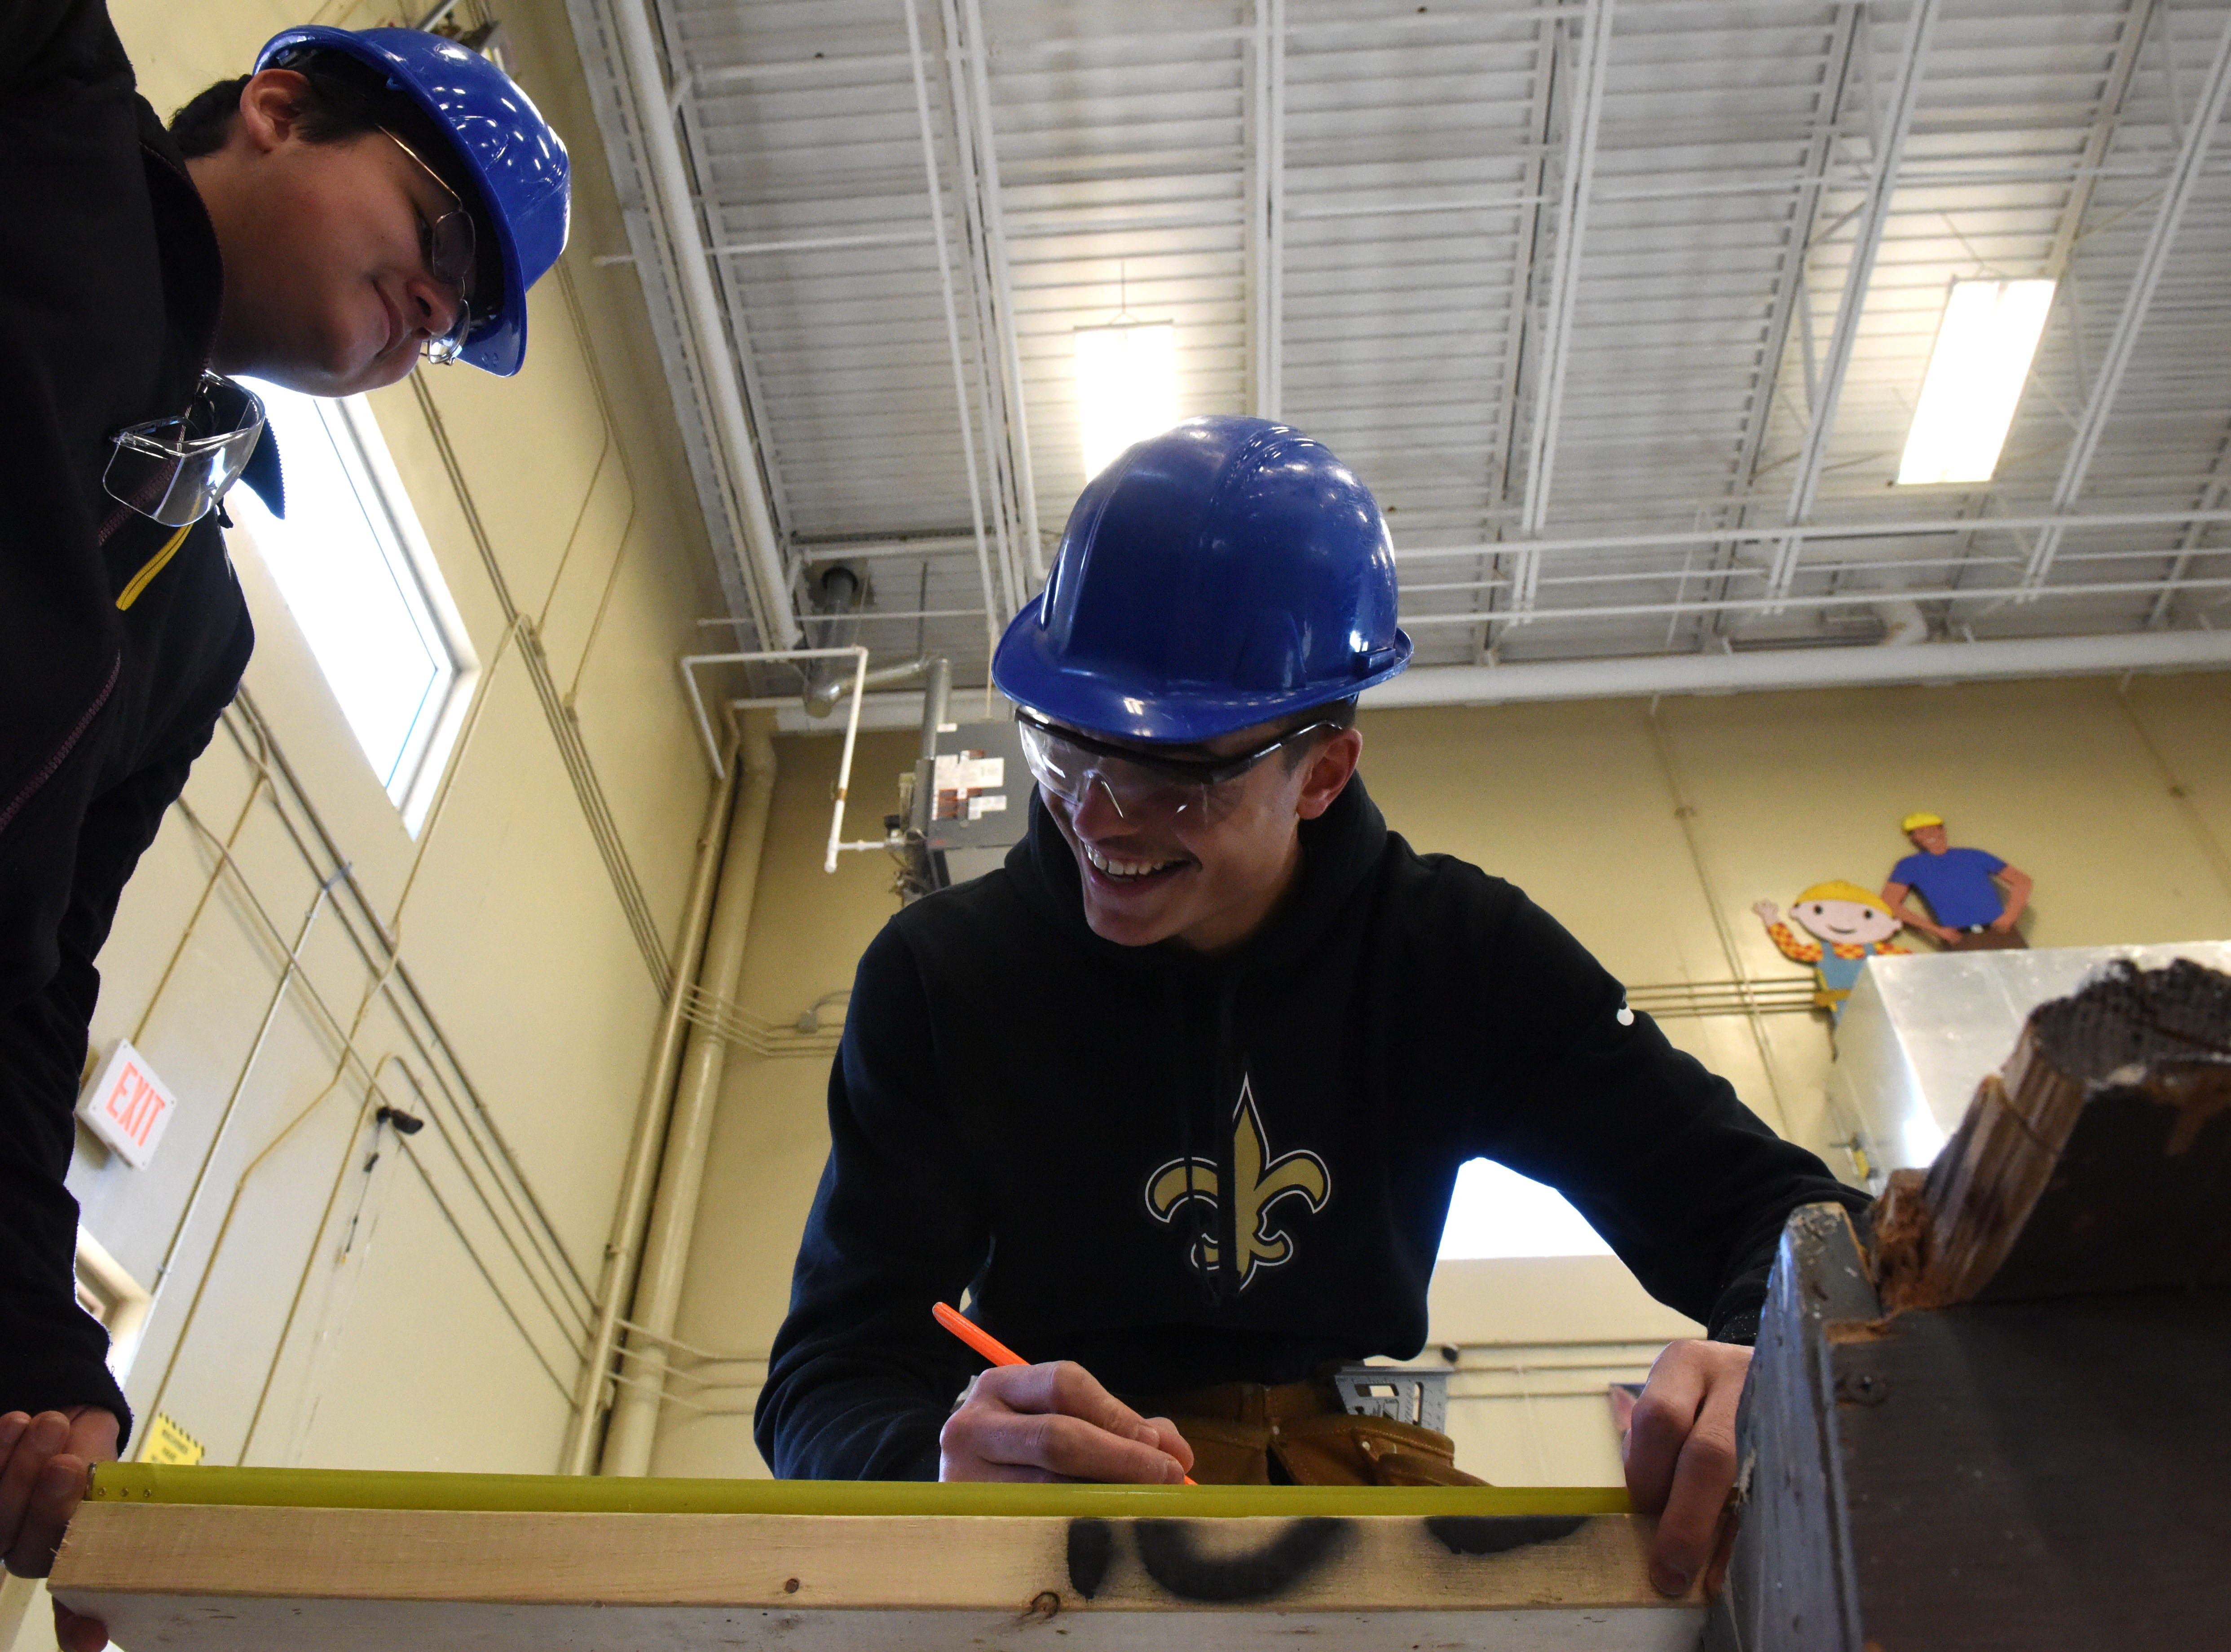 Alan Navarro, left, and Douglas Wells participate in carpentry class at Career and Technical Education Academy, Monday, Jan. 7, 2019 in Sioux Falls, S.D.